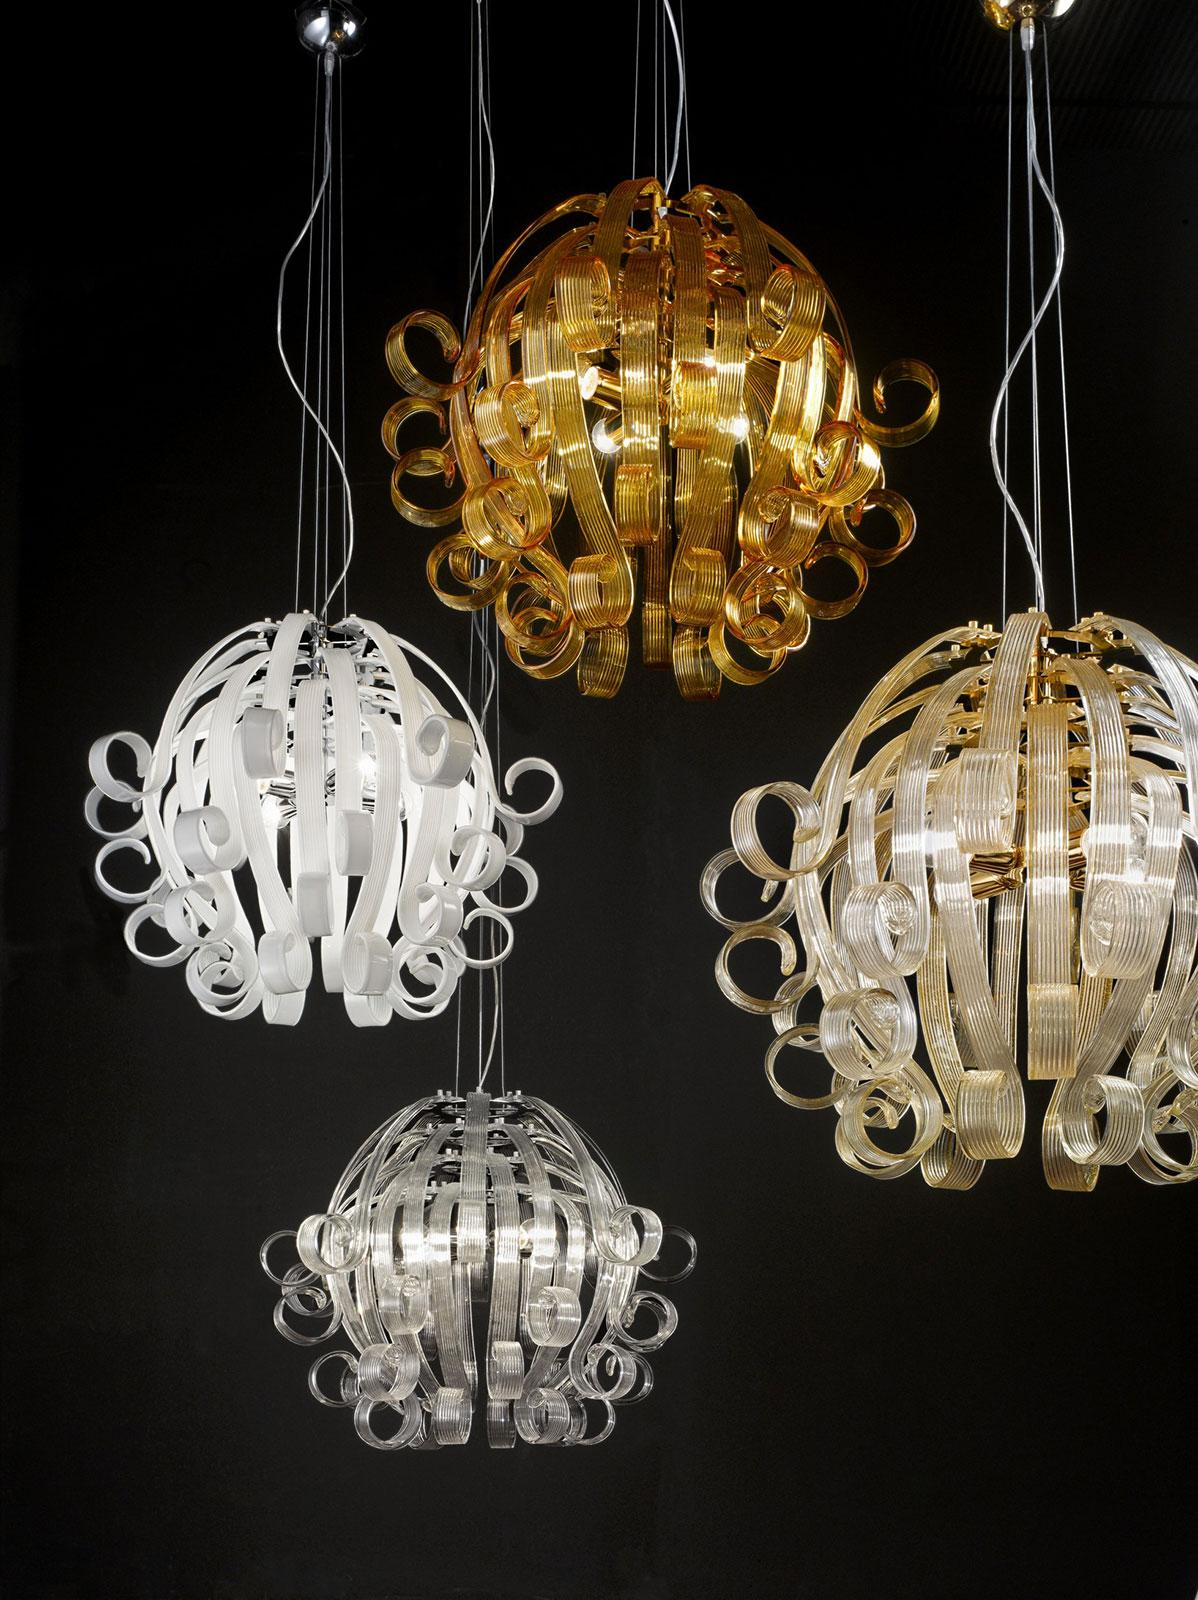 Ricciolo pendant light in Murano glass  IDD